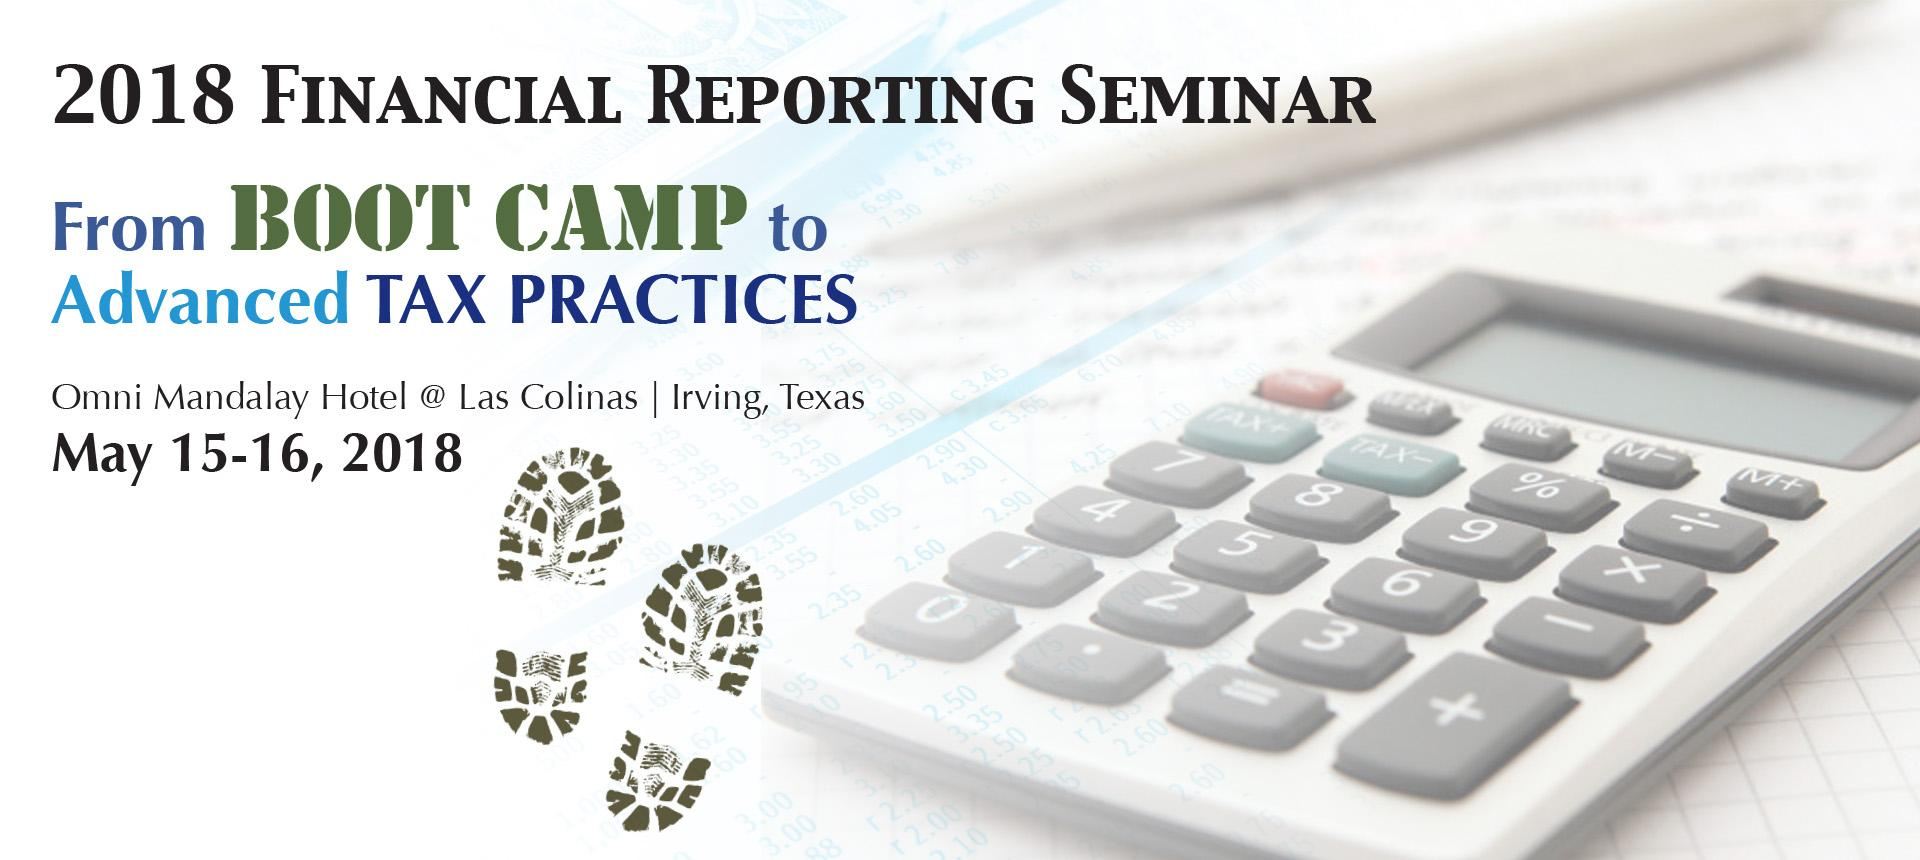 Register for the Financial Reporting Seminar